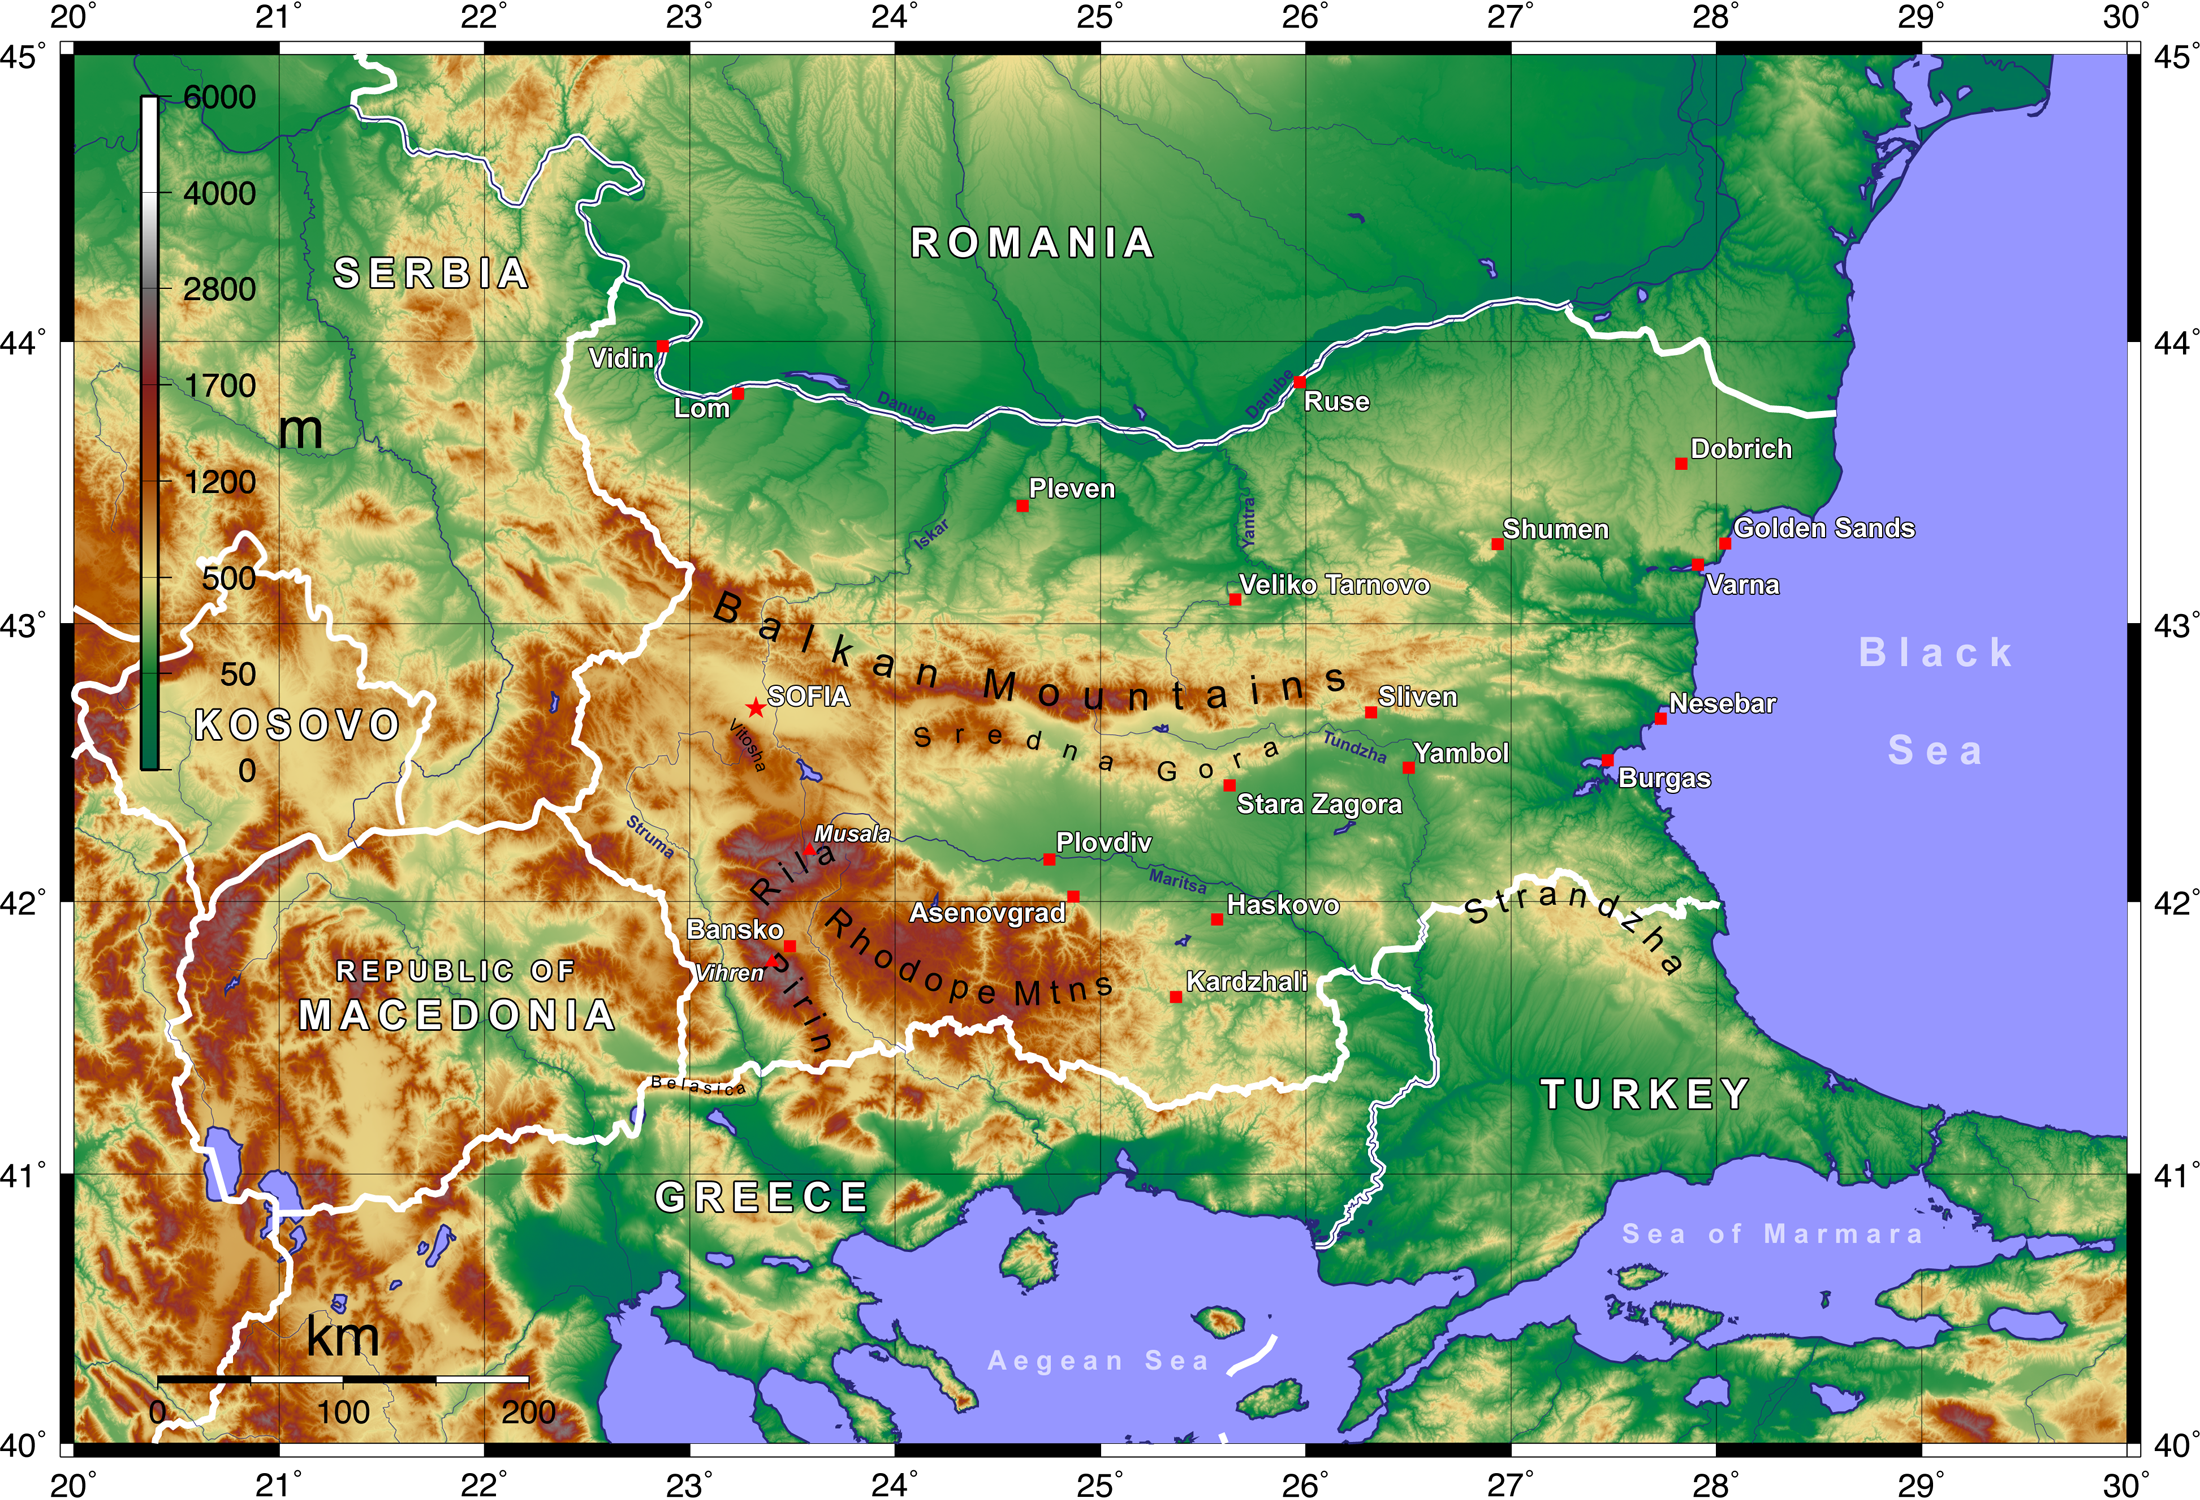 http://upload.wikimedia.org/wikipedia/commons/f/fd/Topographic_Map_of_Bulgaria_English.png